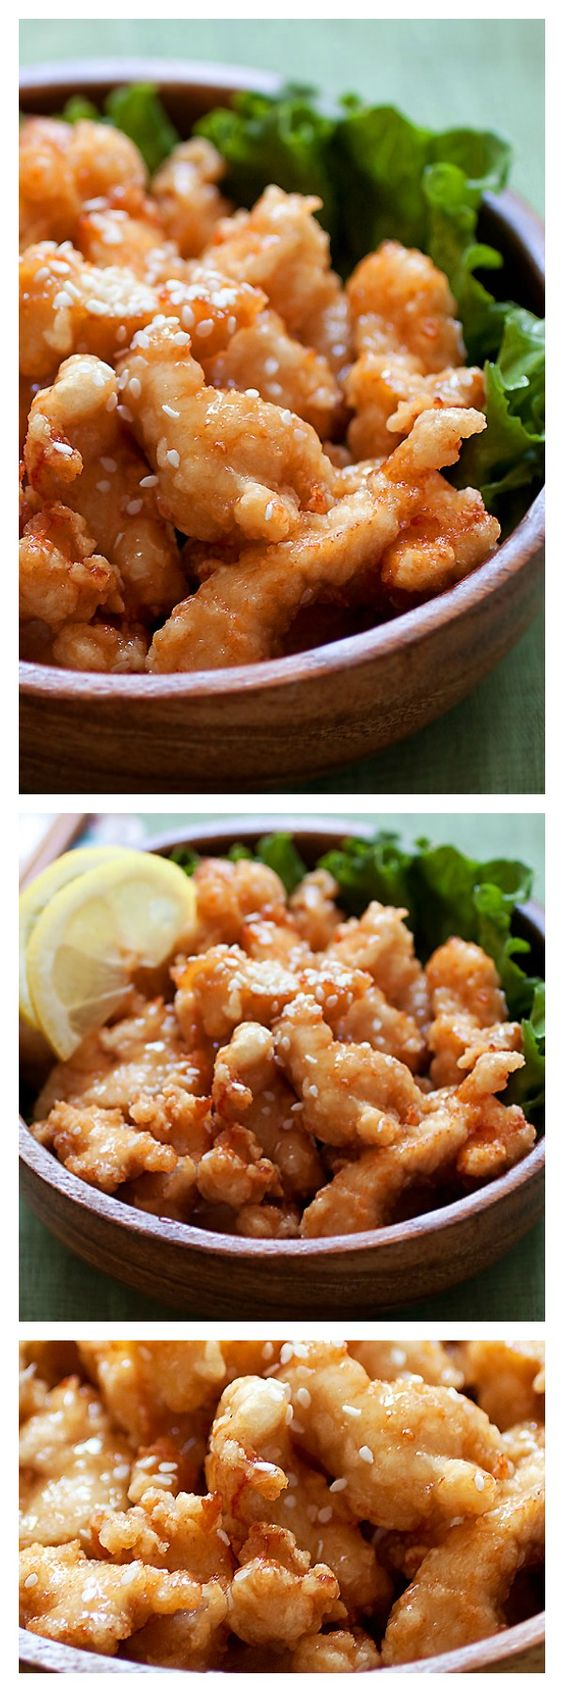 Best ever honey sesame chicken. Easy honey sesame chicken recipe with fried chicken pieces in a sticky sweet and savory honey sesame sauce | http://rasamalaysia.com